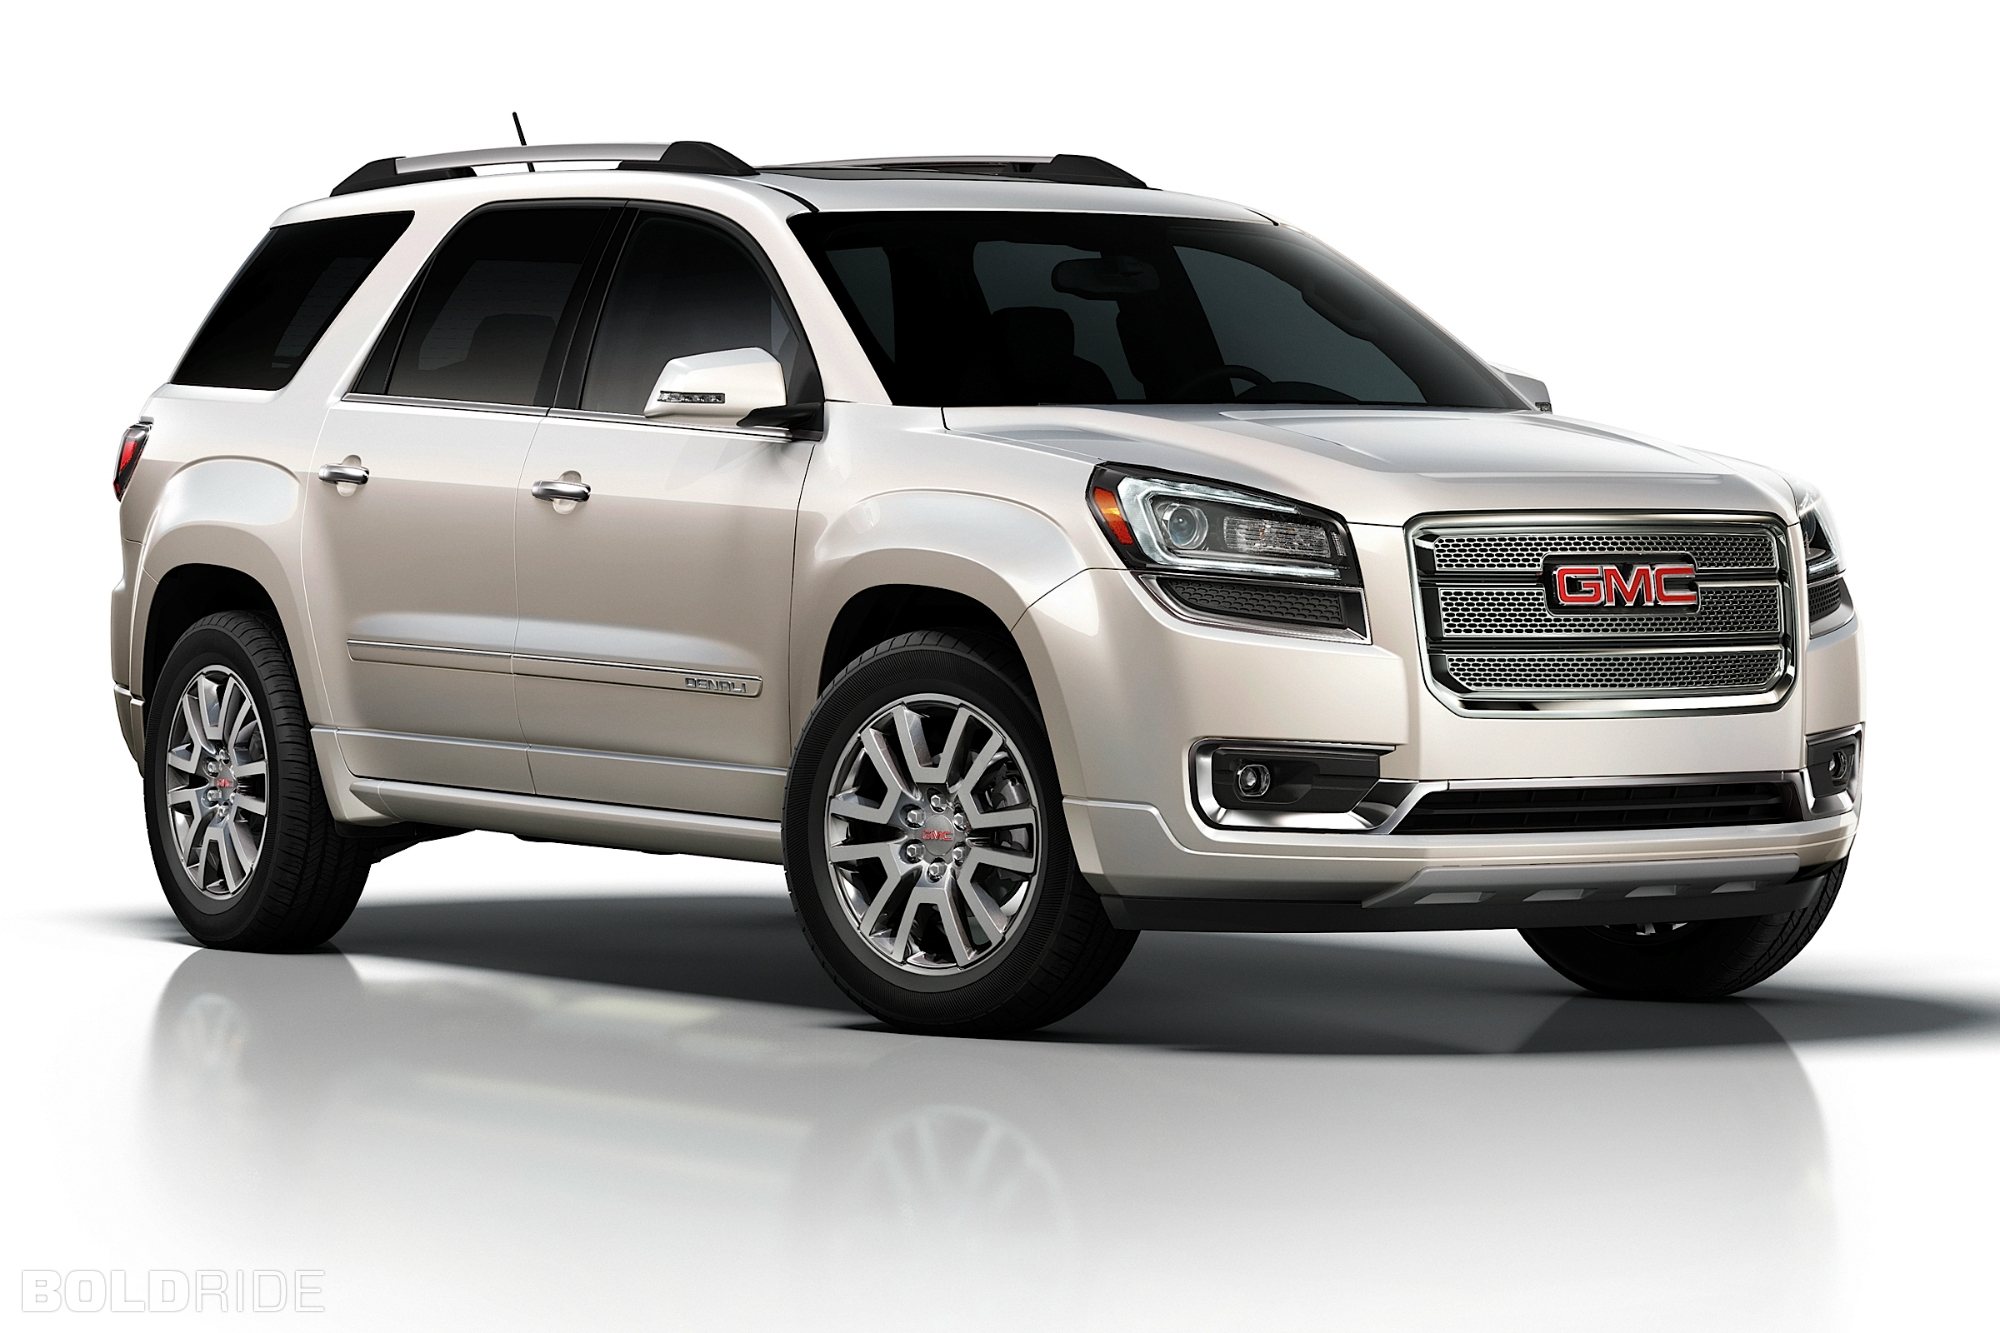 2013 gmc acadia information and photos zombiedrive. Black Bedroom Furniture Sets. Home Design Ideas